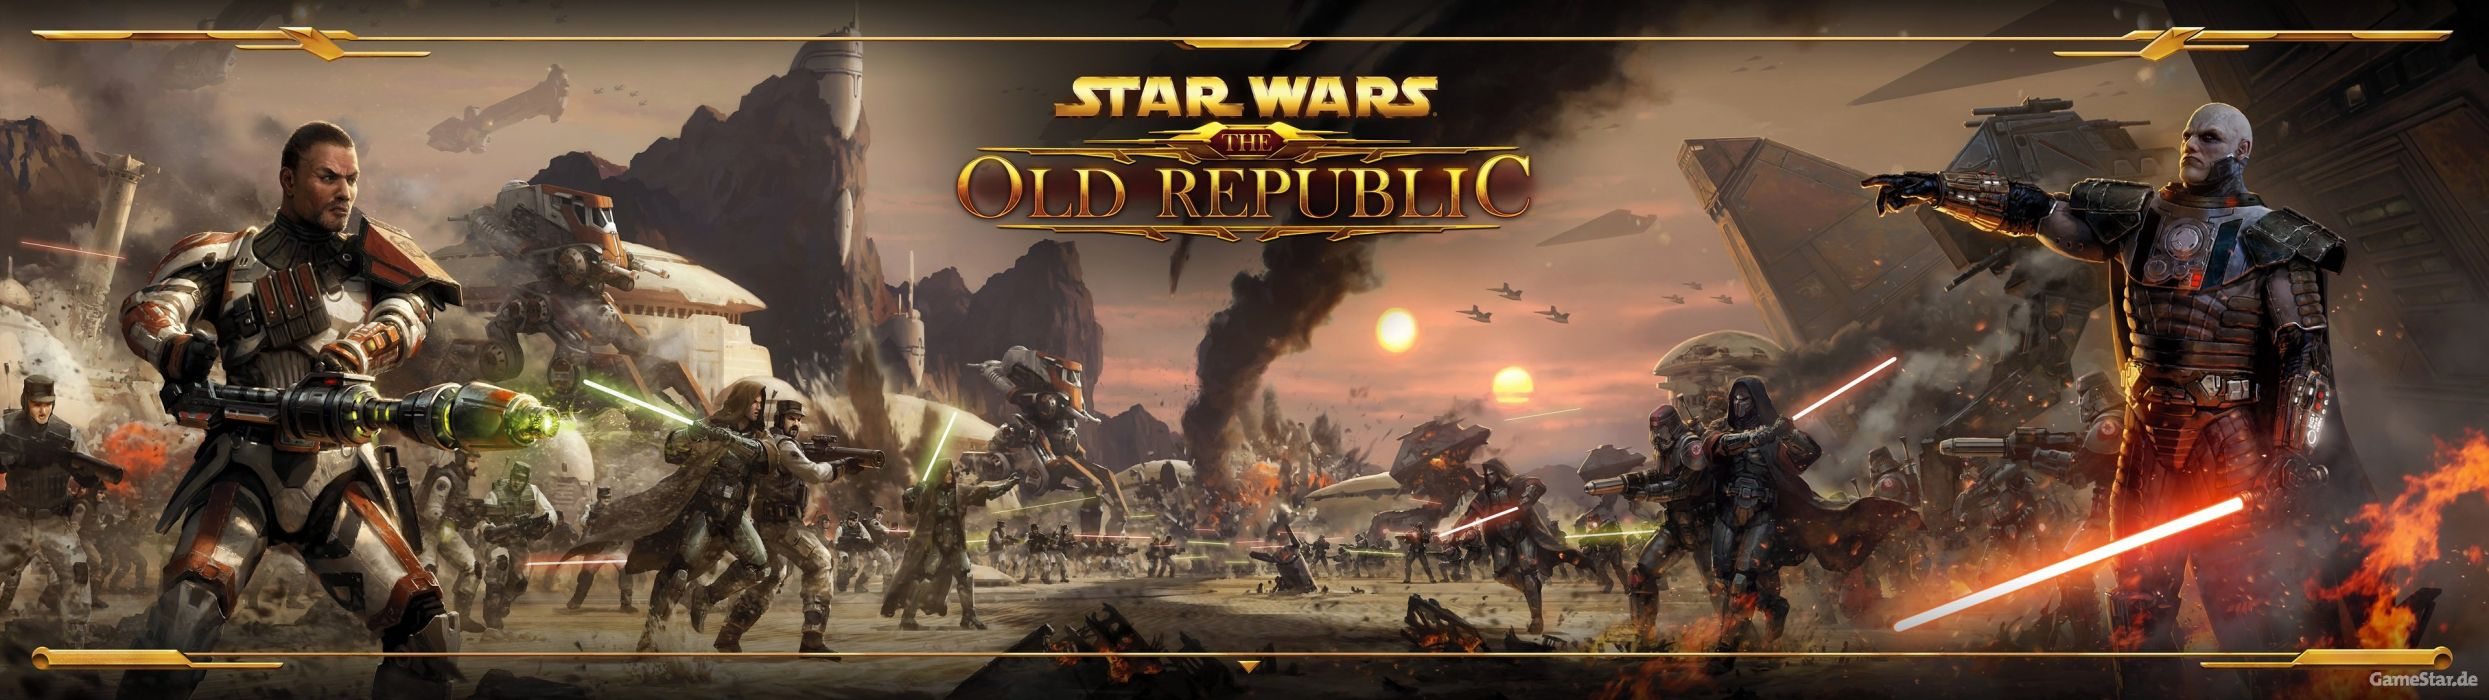 Star Wars Old Republic Mmo Rpg Swtor Fighting Sci Fi Wallpaper 3840x1080 518892 Wallpaperup